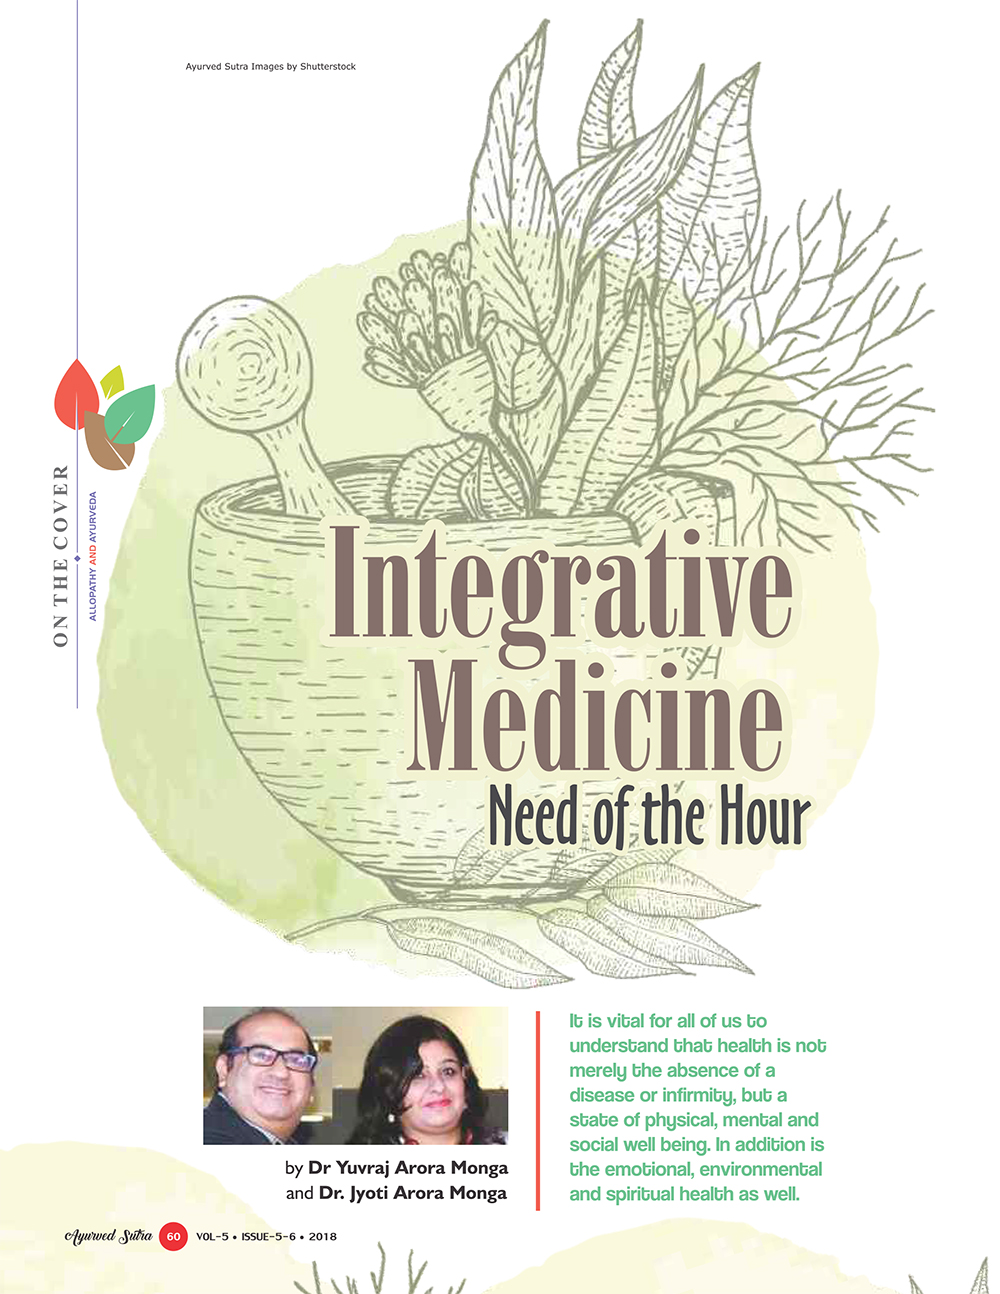 Ayurvedsutra Vol 05 issue 05 06 62 - Integrative Medicine:  Need of the Hour